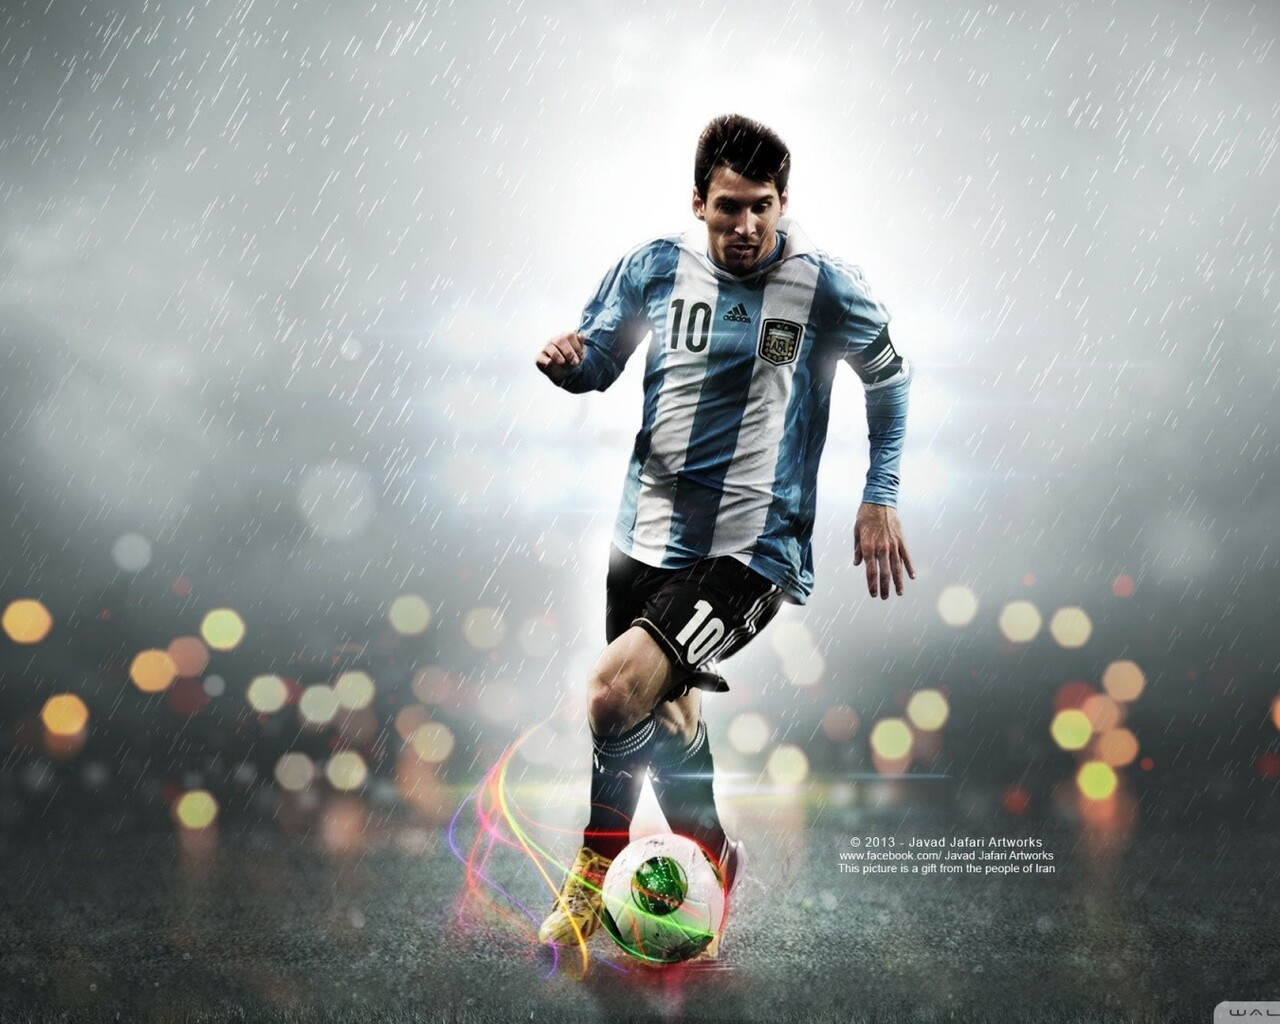 1280x1024 Lionel Messi 1280x1024 Resolution Hd 4k Wallpapers